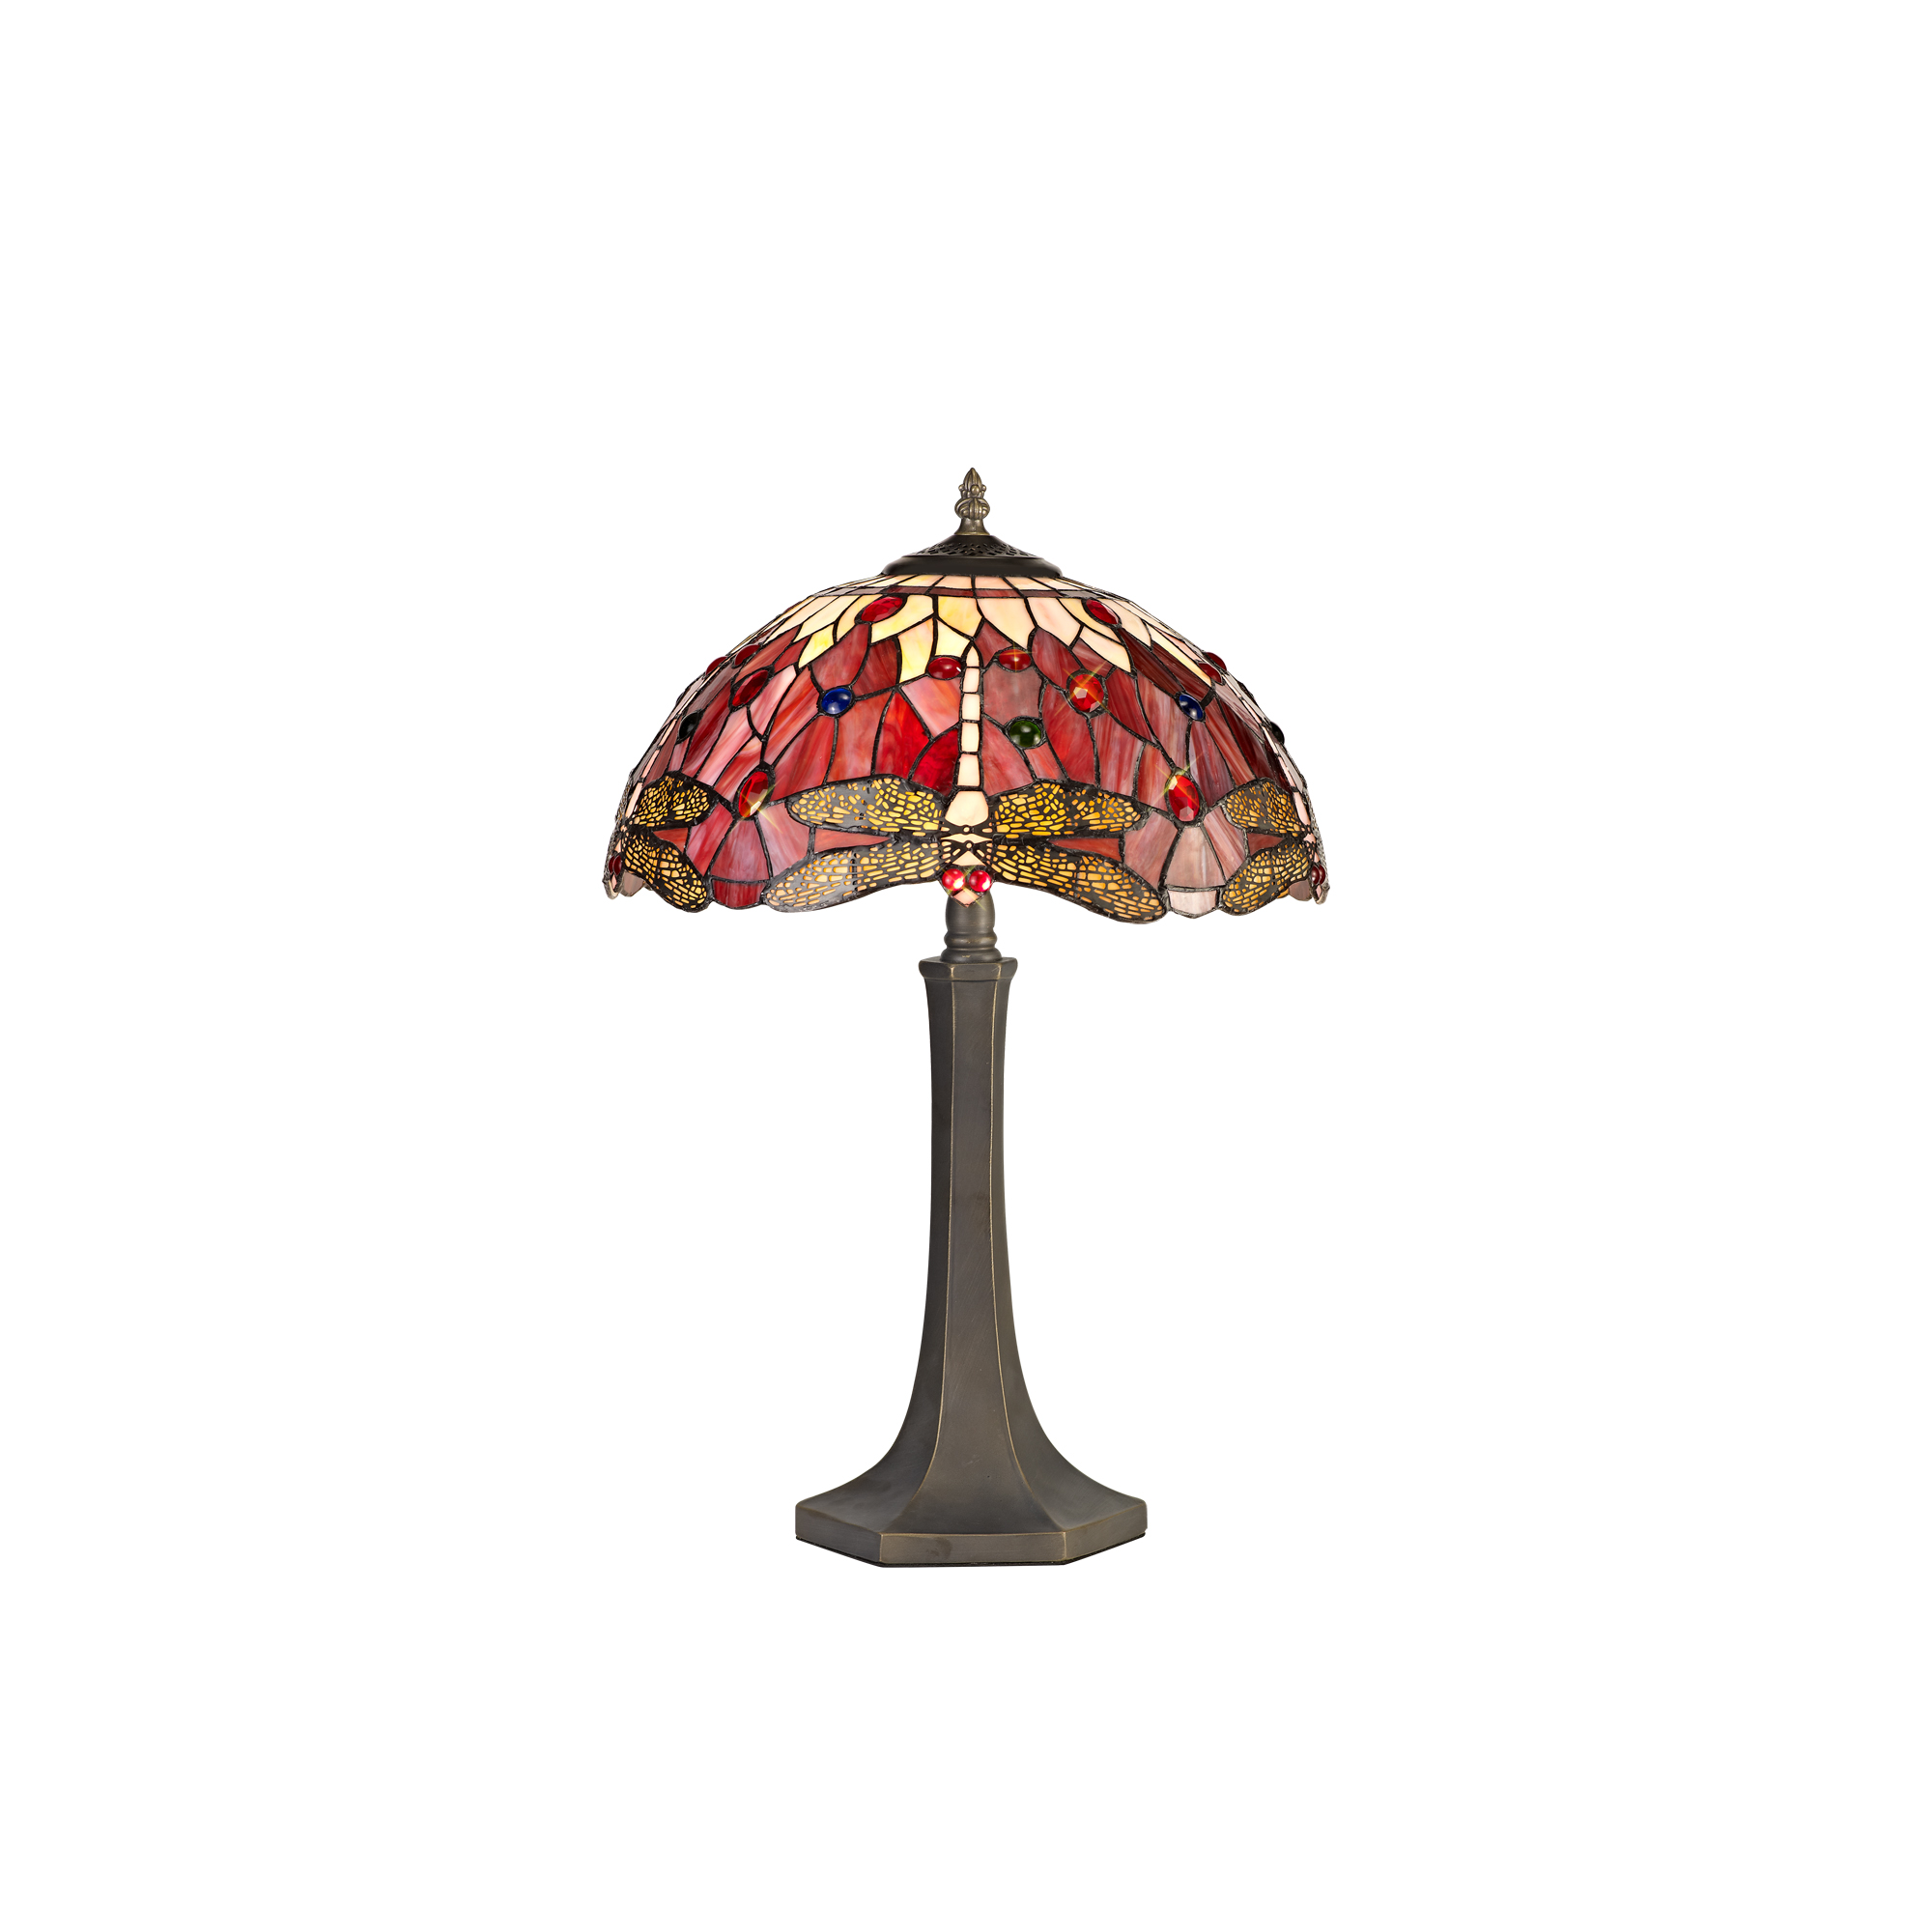 2 Light Octagonal Table Lamp E27 With 40cm Tiffany Shade